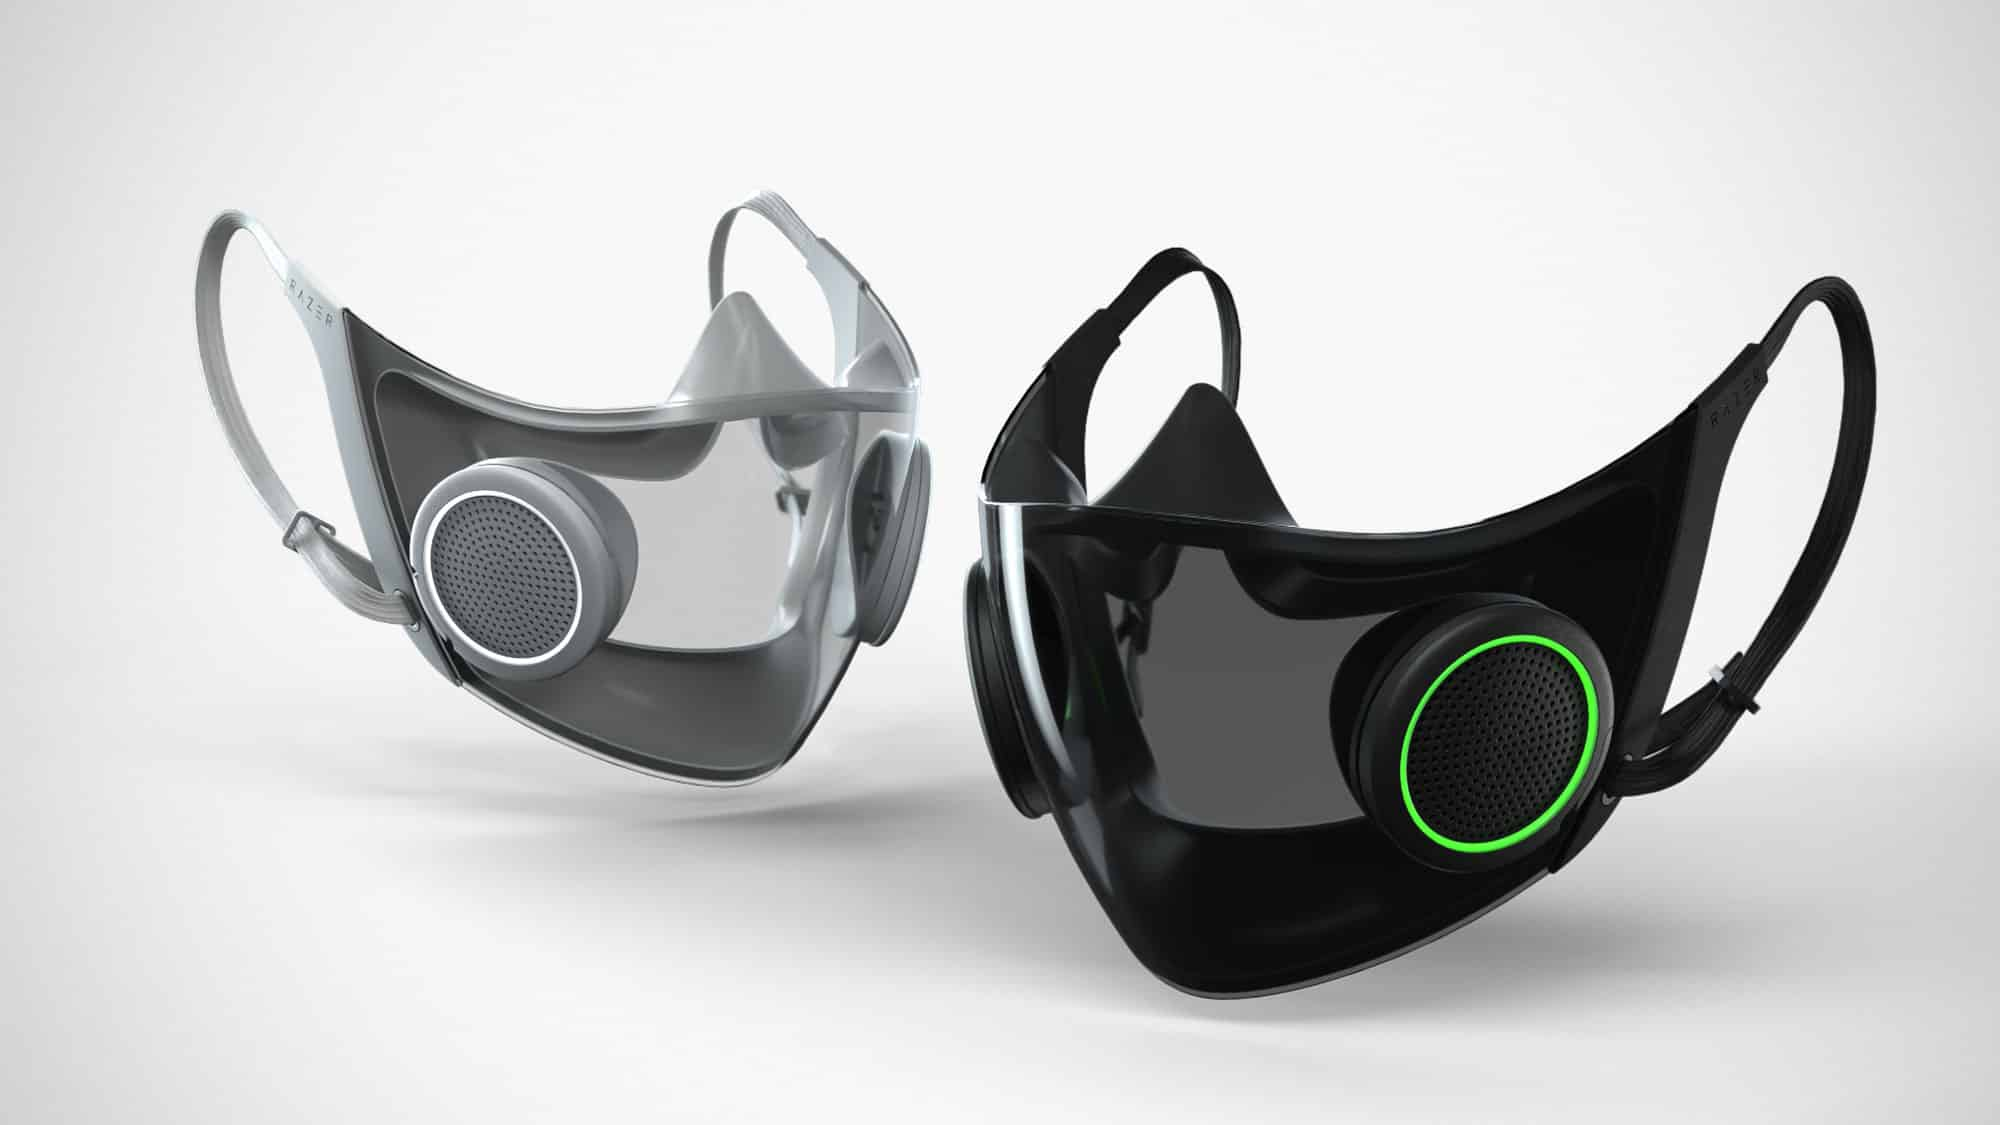 Razer's high-tech N95 face mask to go into production